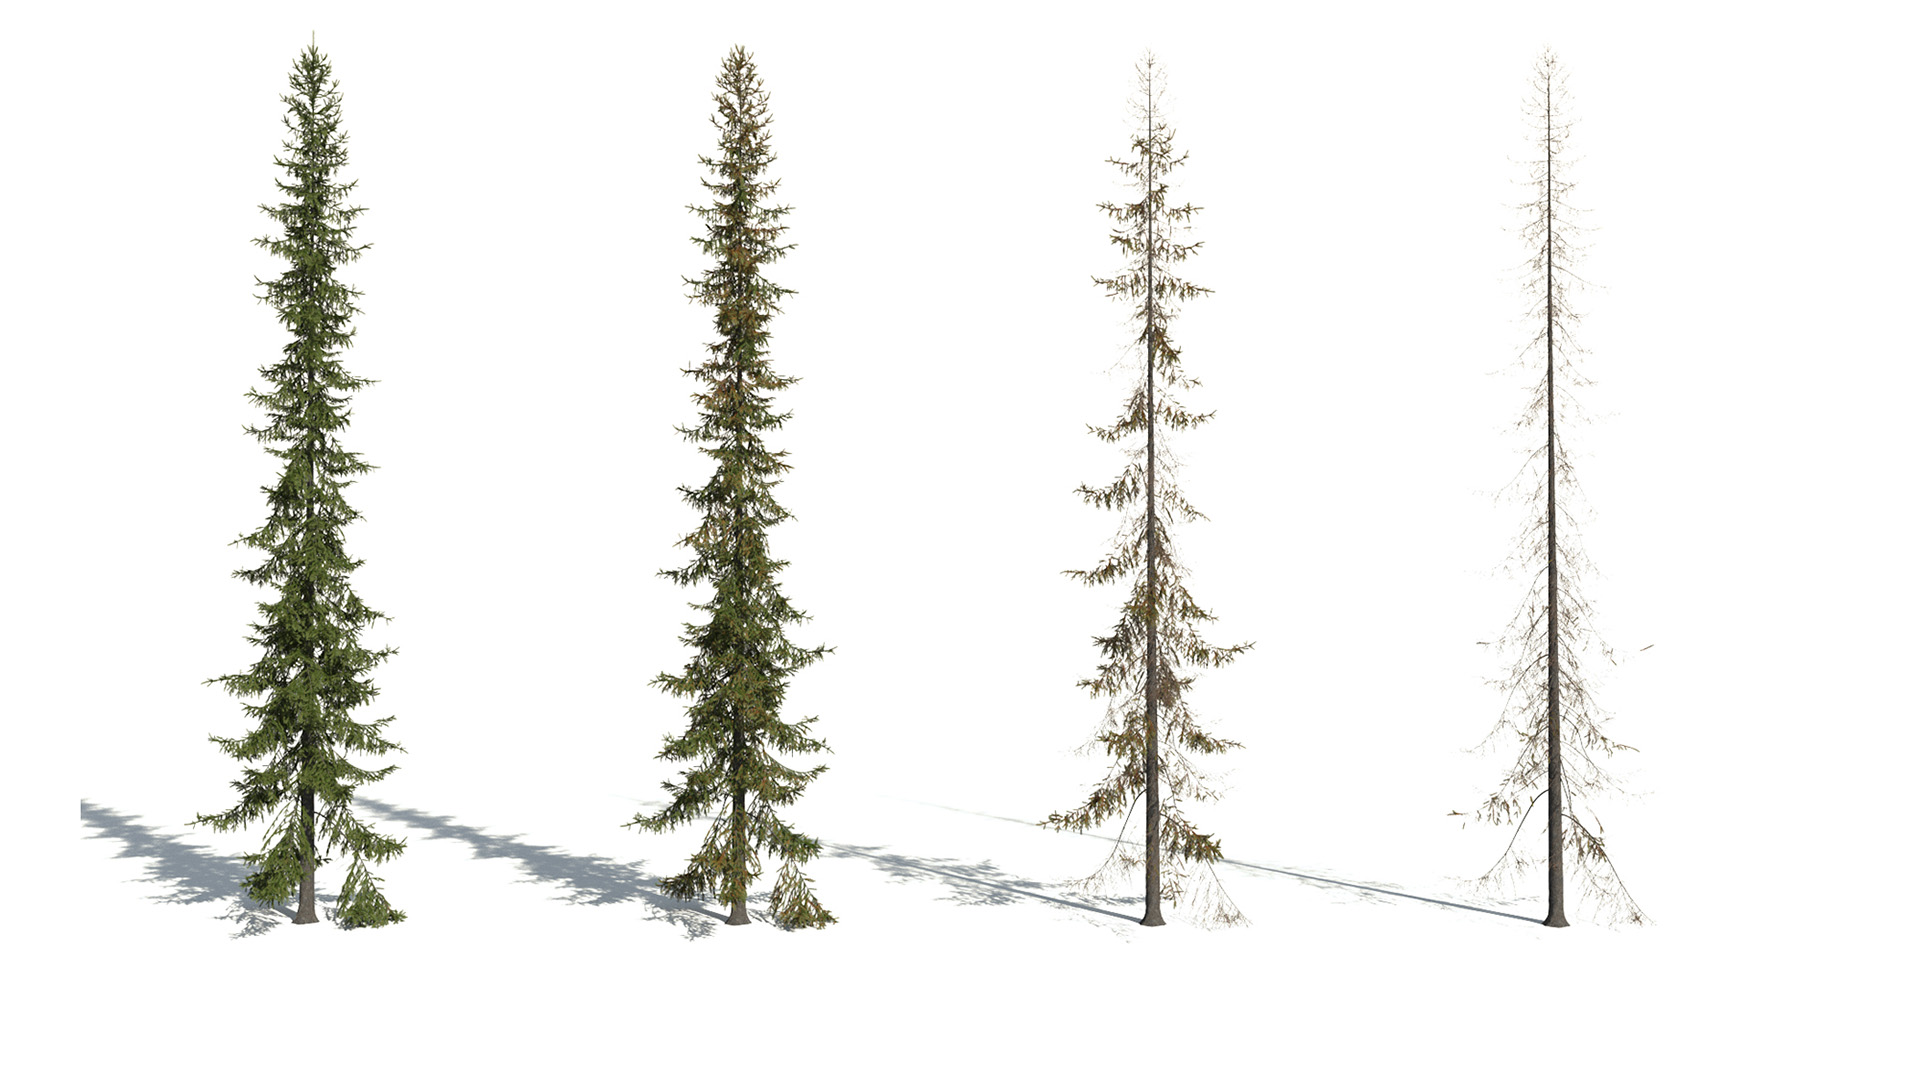 3D model of the Black spruce Picea mariana health variations